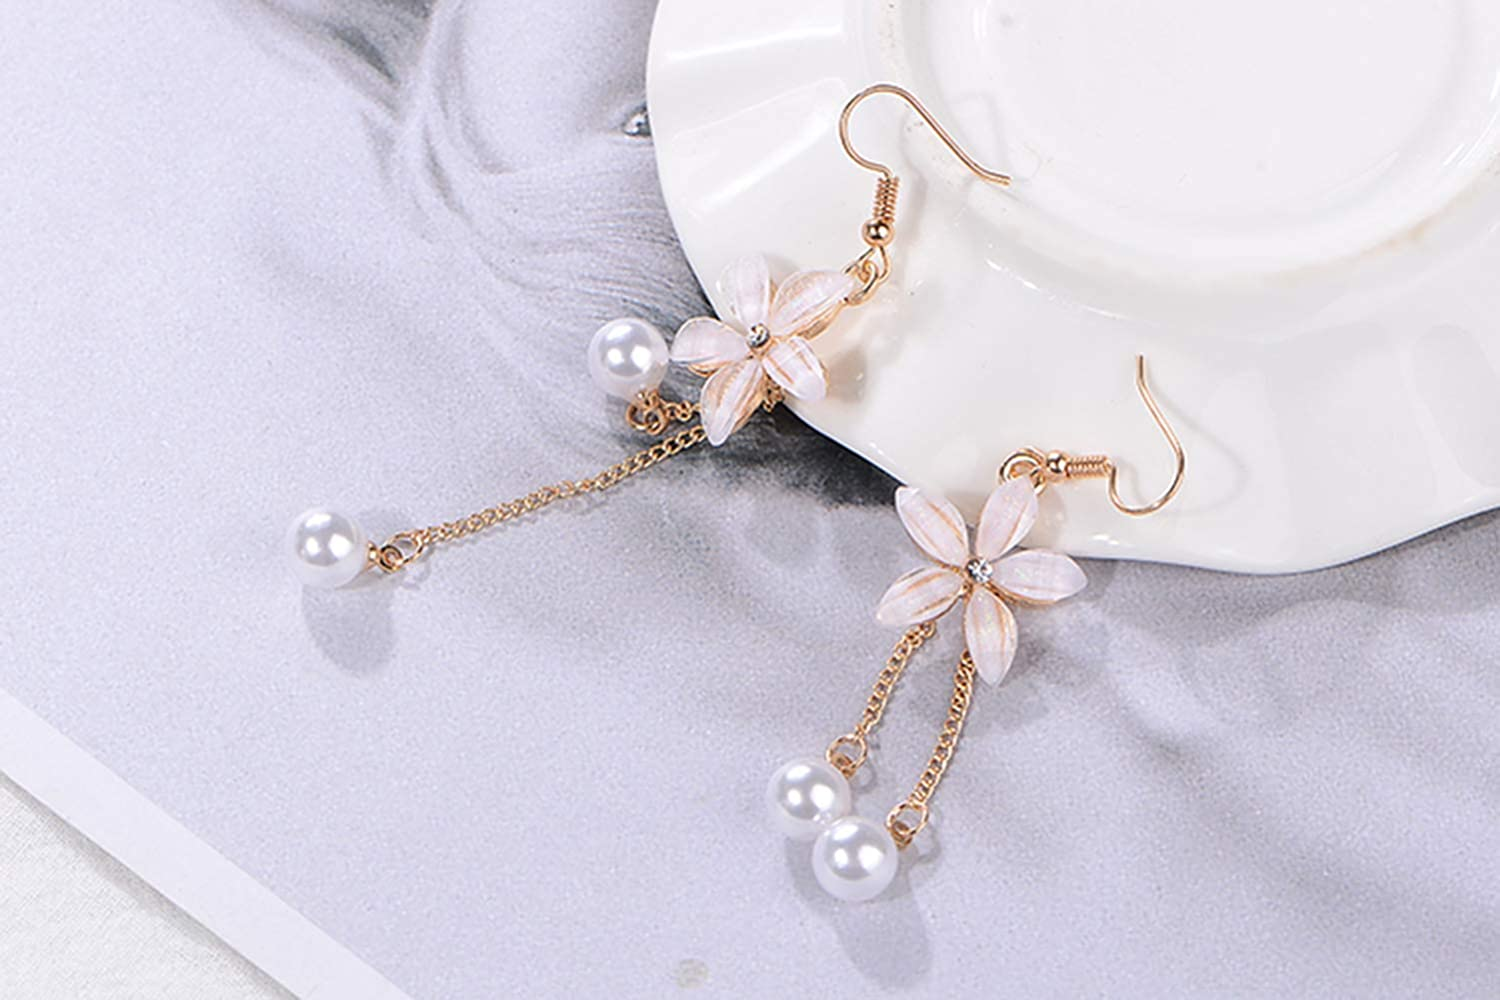 Womens Flower Shaped Long Dangle Earrings CICINIO Hypoallergenic Freshwater Cultured Pearl Earrings Great Gift for Girls